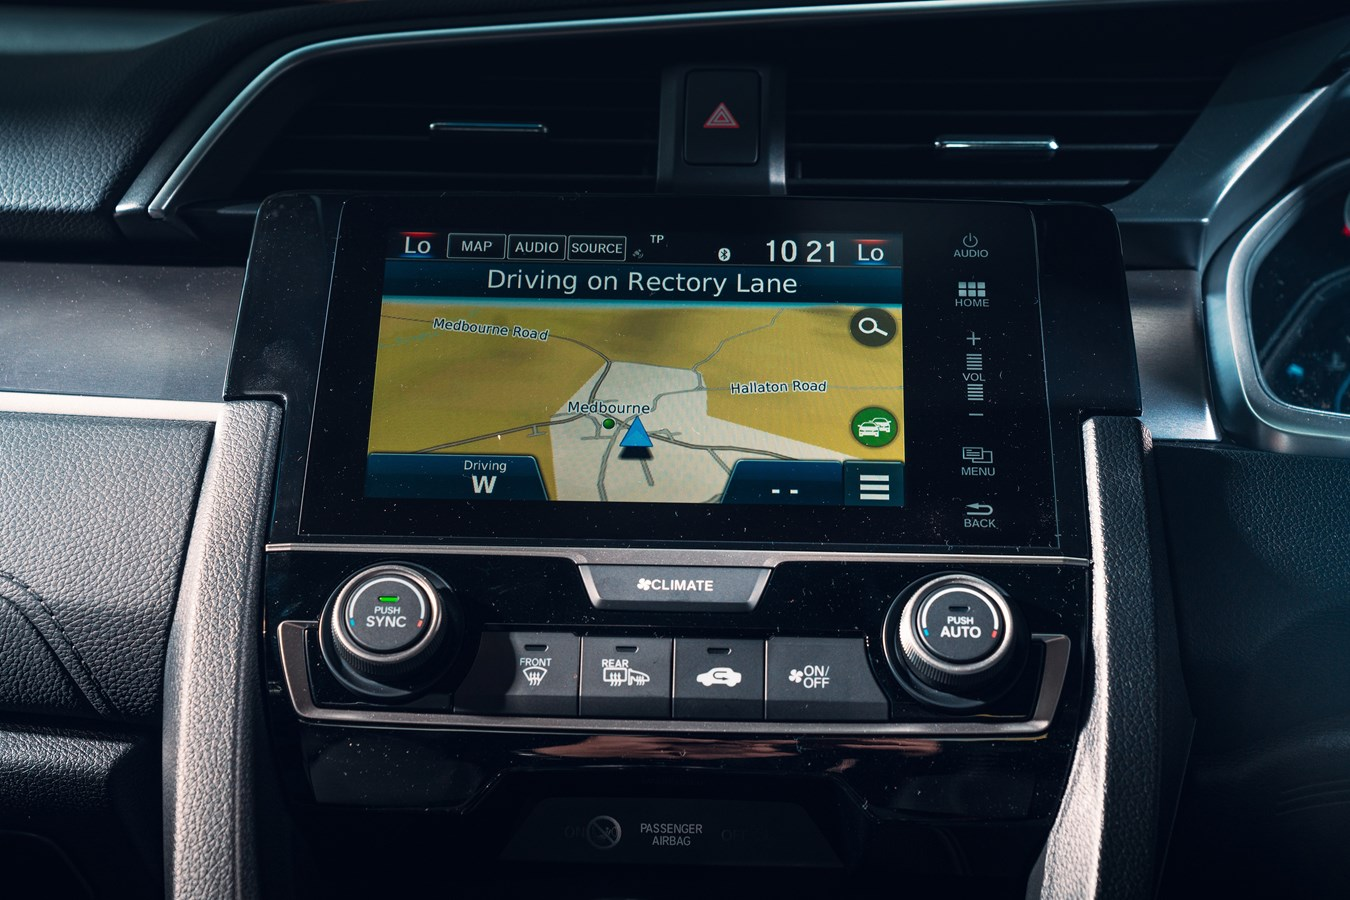 The main infotainment screen may look good, but it's not easy to use